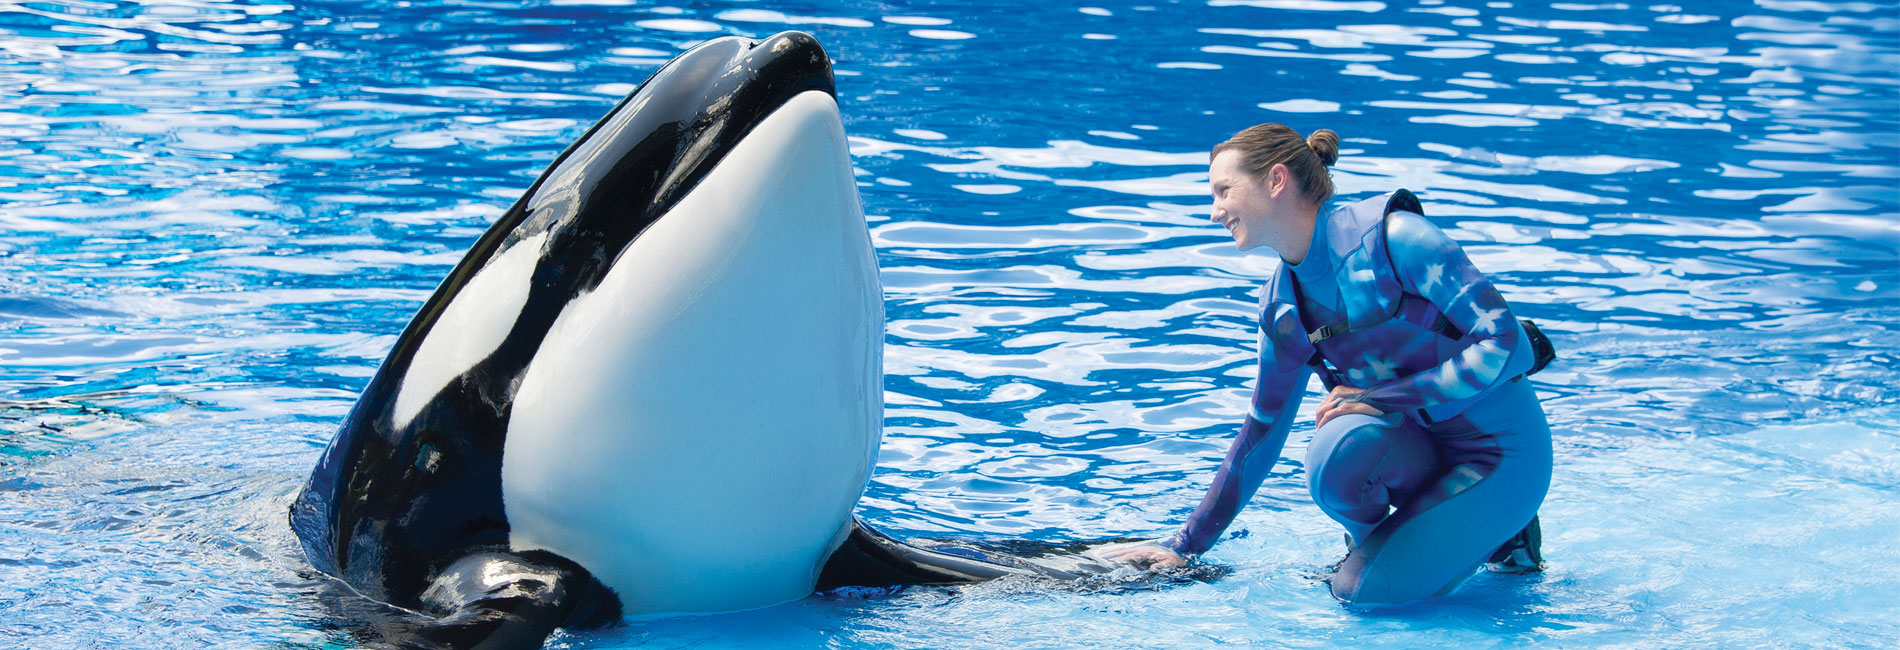 Killer Whales Behind the Scenes